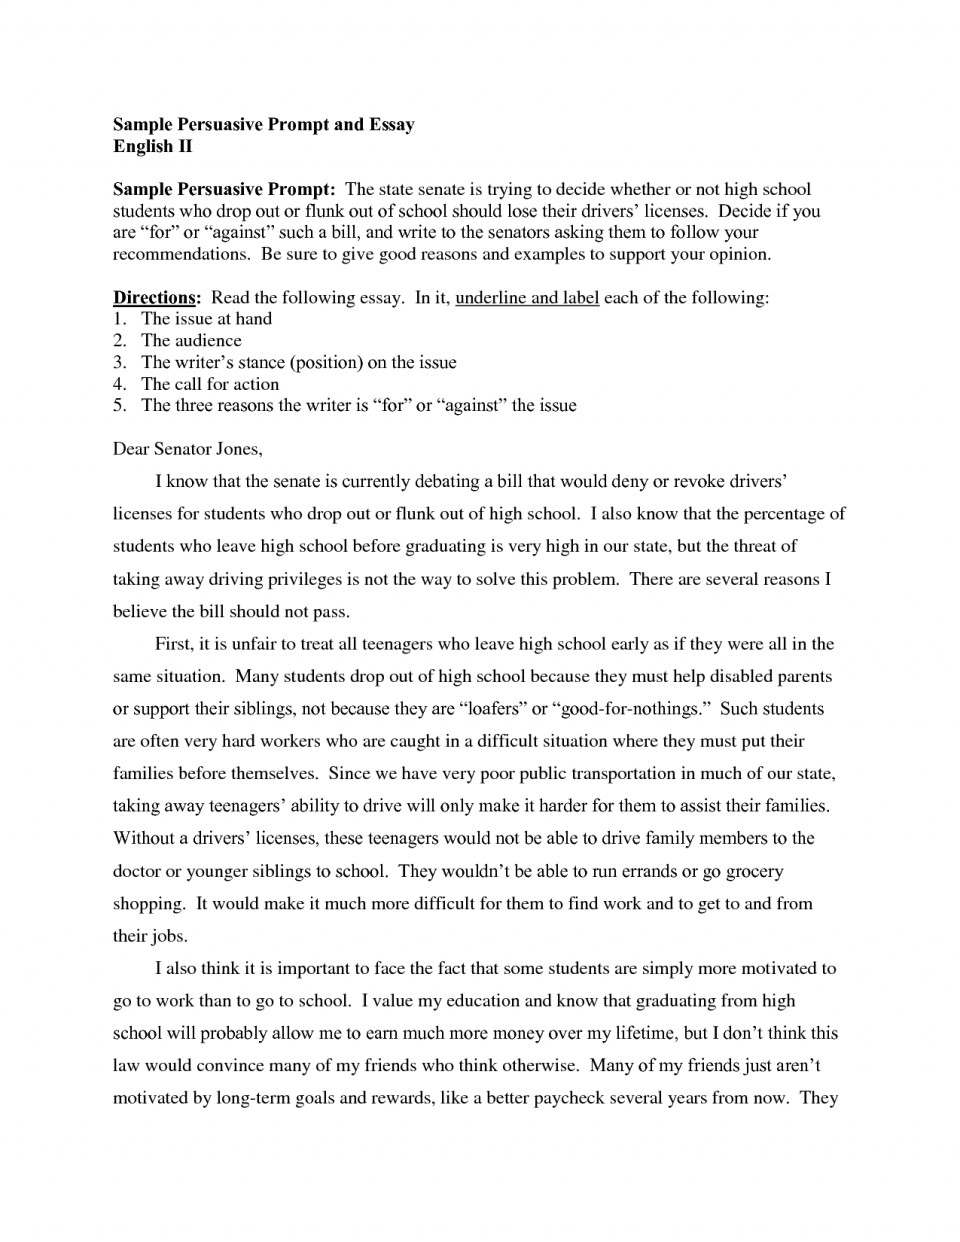 013 Research Paper Easy Topic Persuasive Essay Topics For High School Sample Ideas Highschool Students Good Prompt Funny Fun List Of Seniors Writing English Sensational Psychology Biology 960